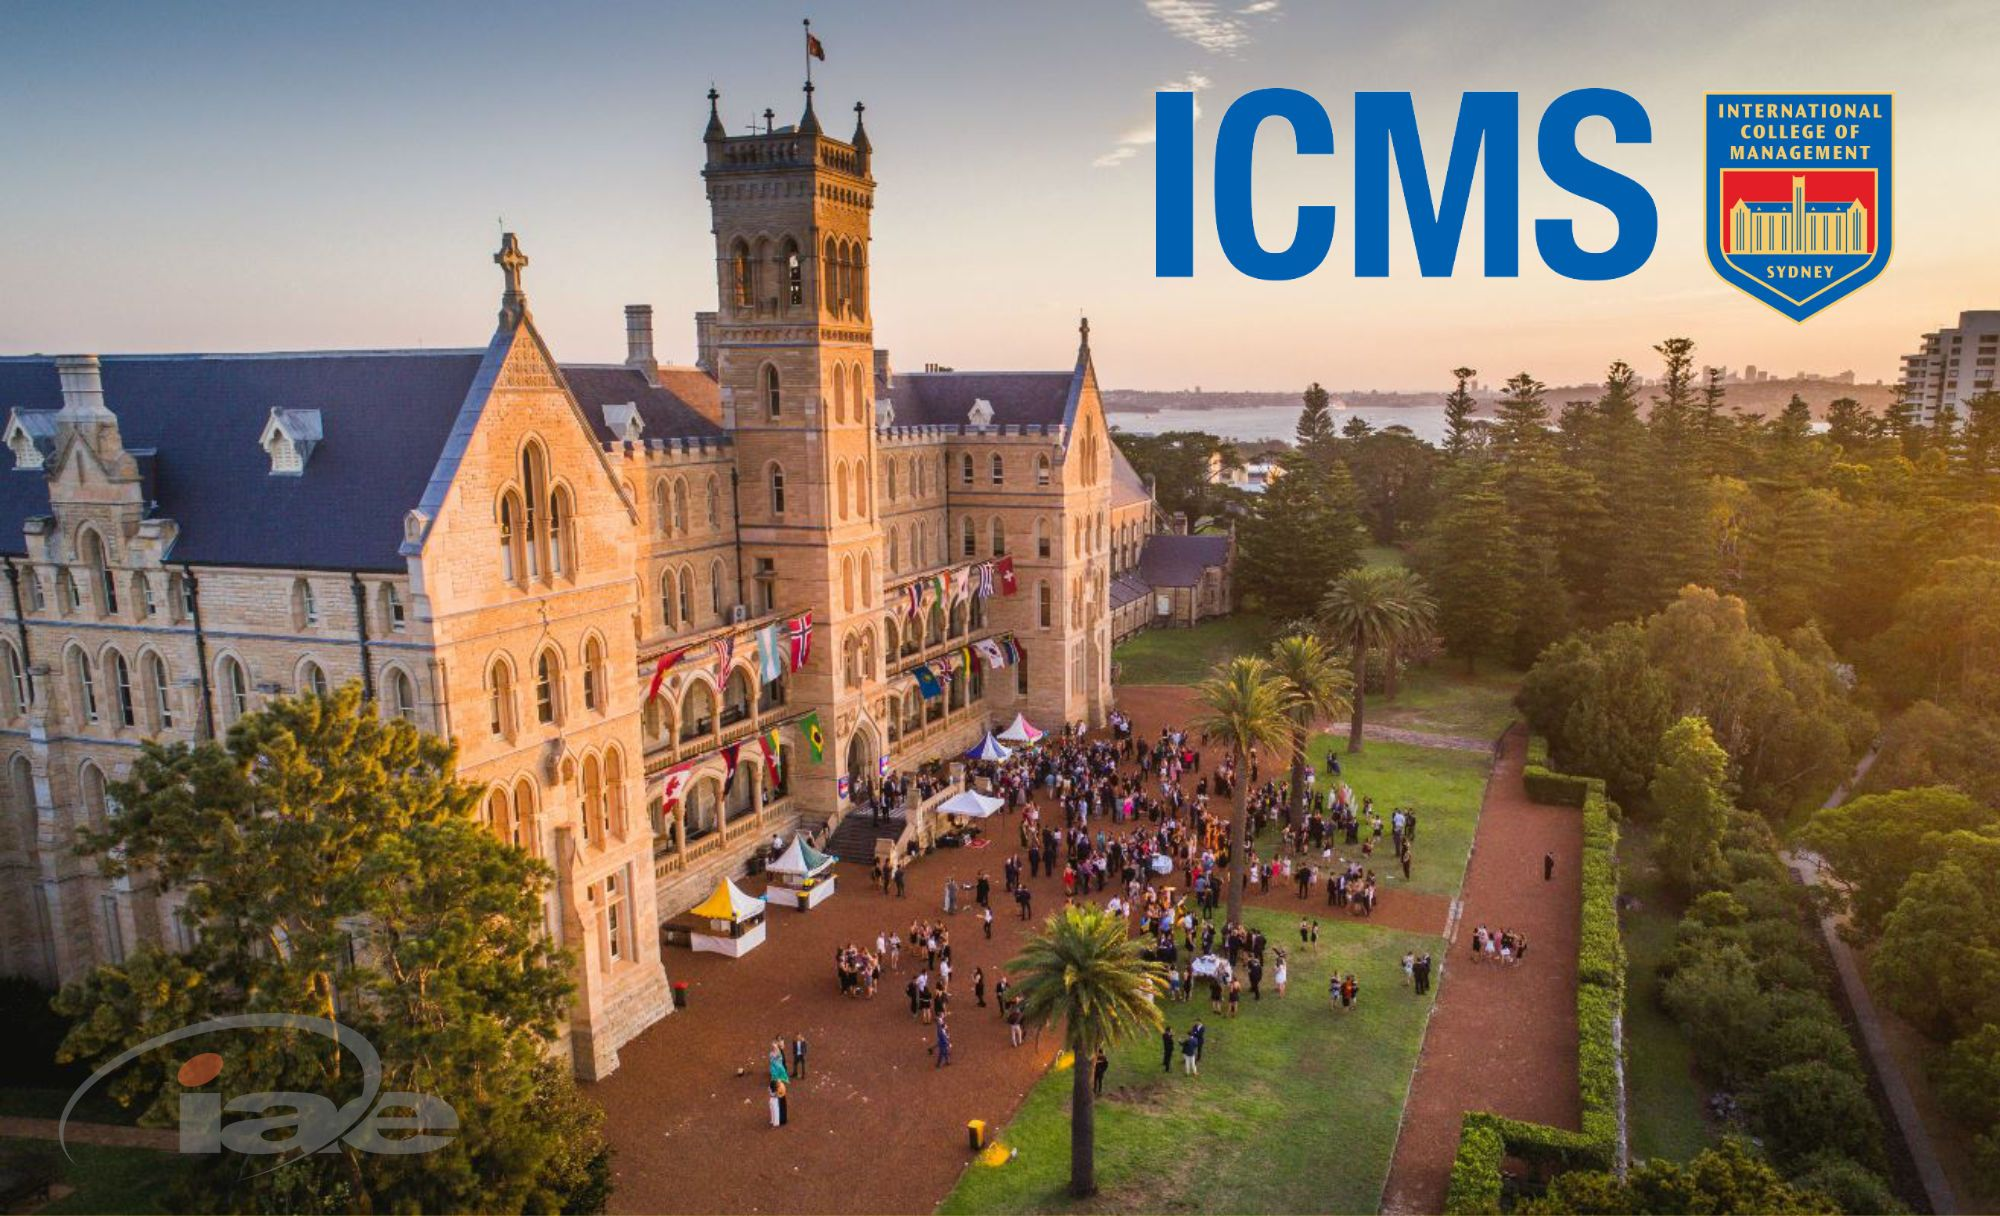 STUDY AT ICMS (Sydney) with a $14,000 scholarship: Do a Management/Business Degree at ICMS and Graduate With Work Experience Under Your Belt